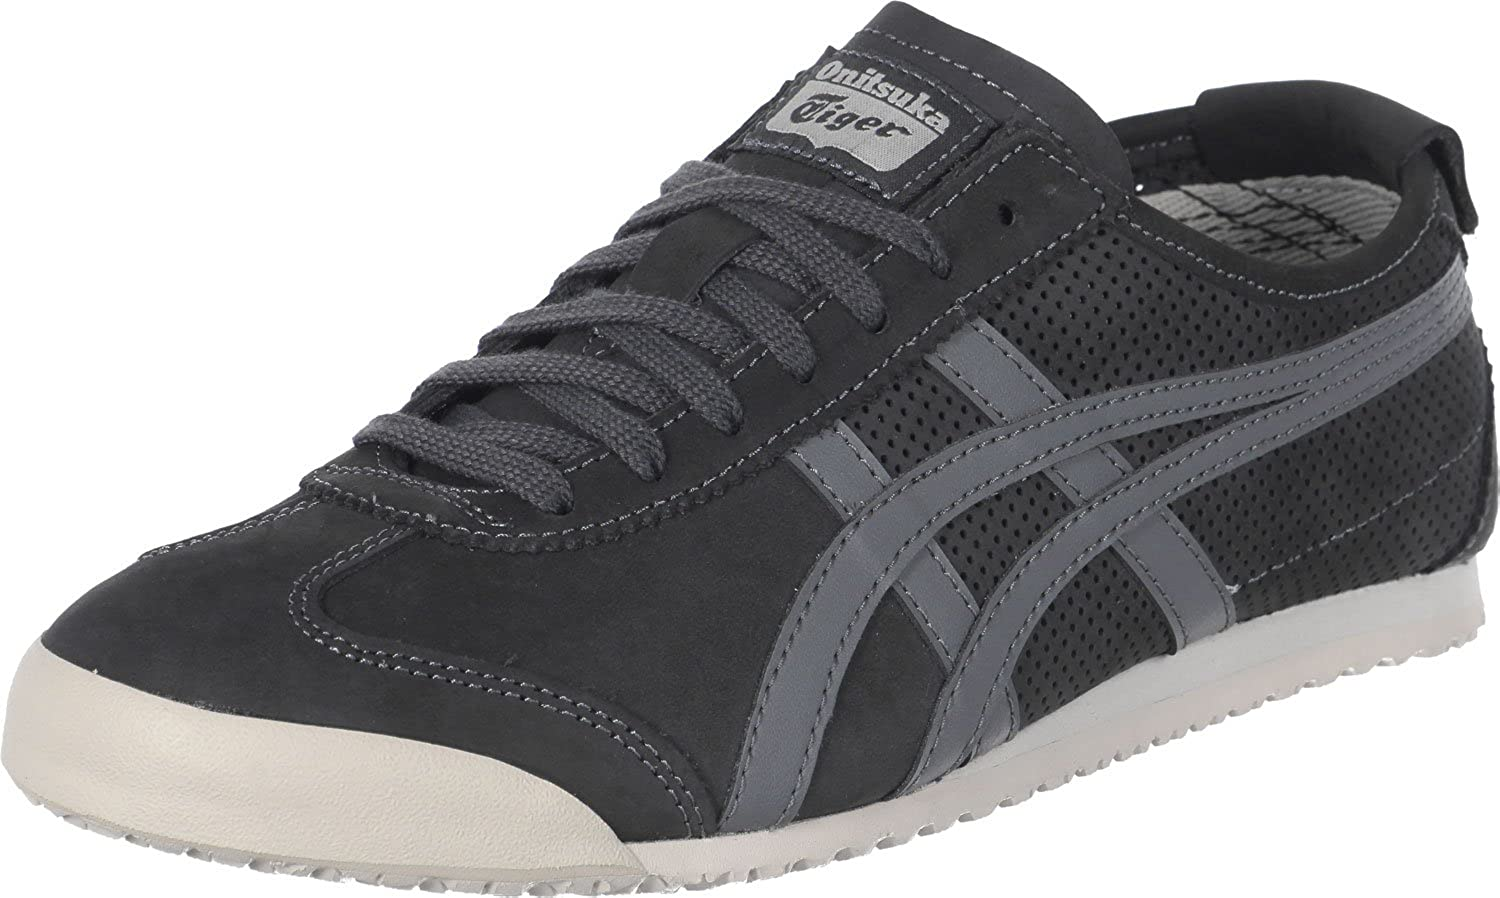 pretty nice a6604 e2519 Onitsuka Tiger Mexico 66 Shoes Grey Size: 7: Amazon.co.uk ...